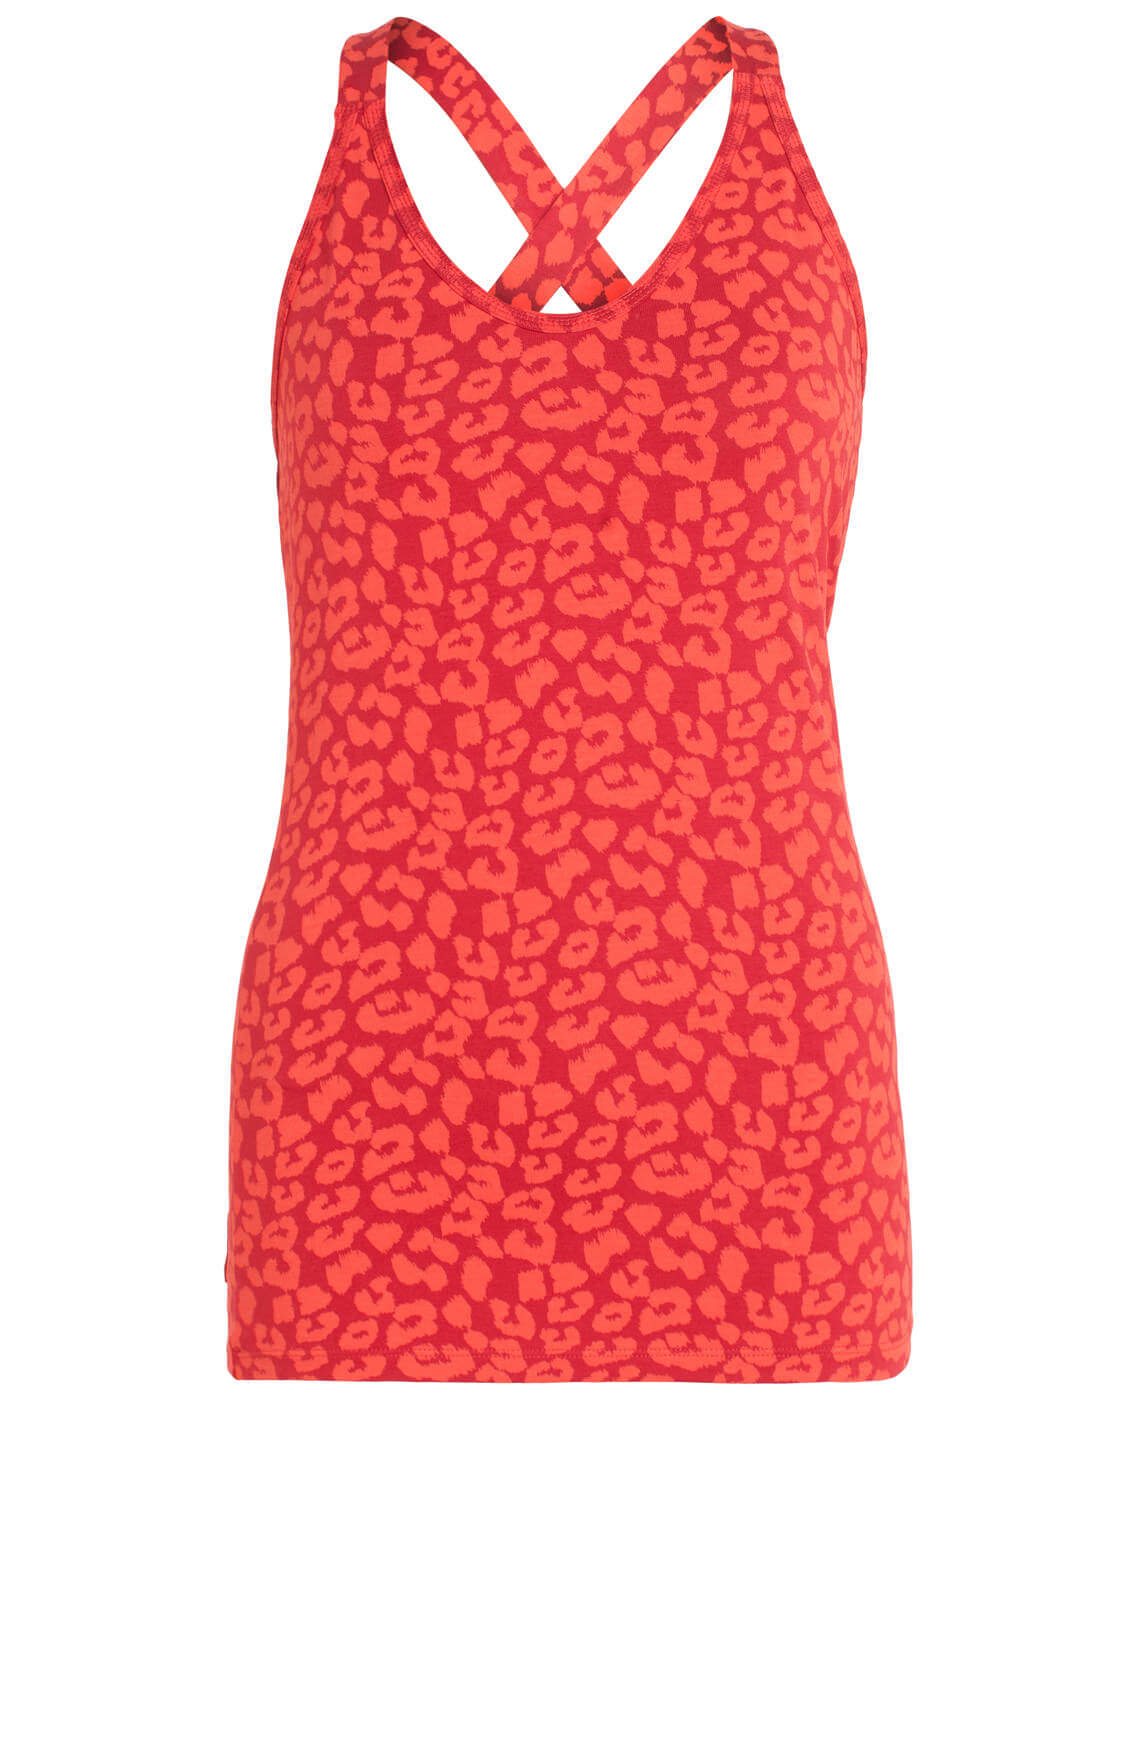 10 Days Dames Top met panterprint Rood